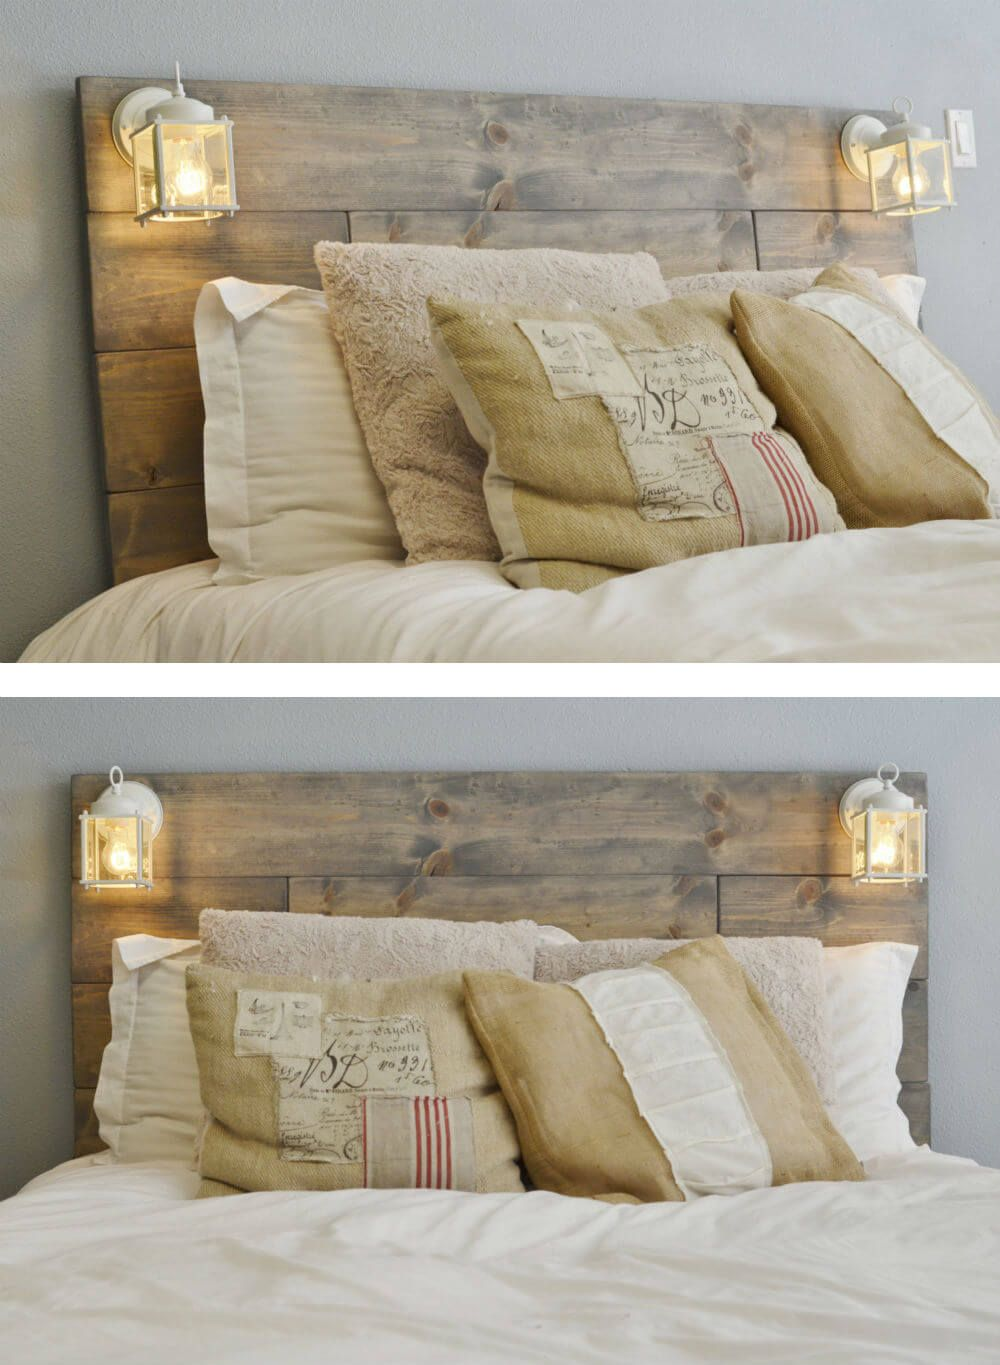 24 Unique Bedroom Decorations And Accessories That Will Make The